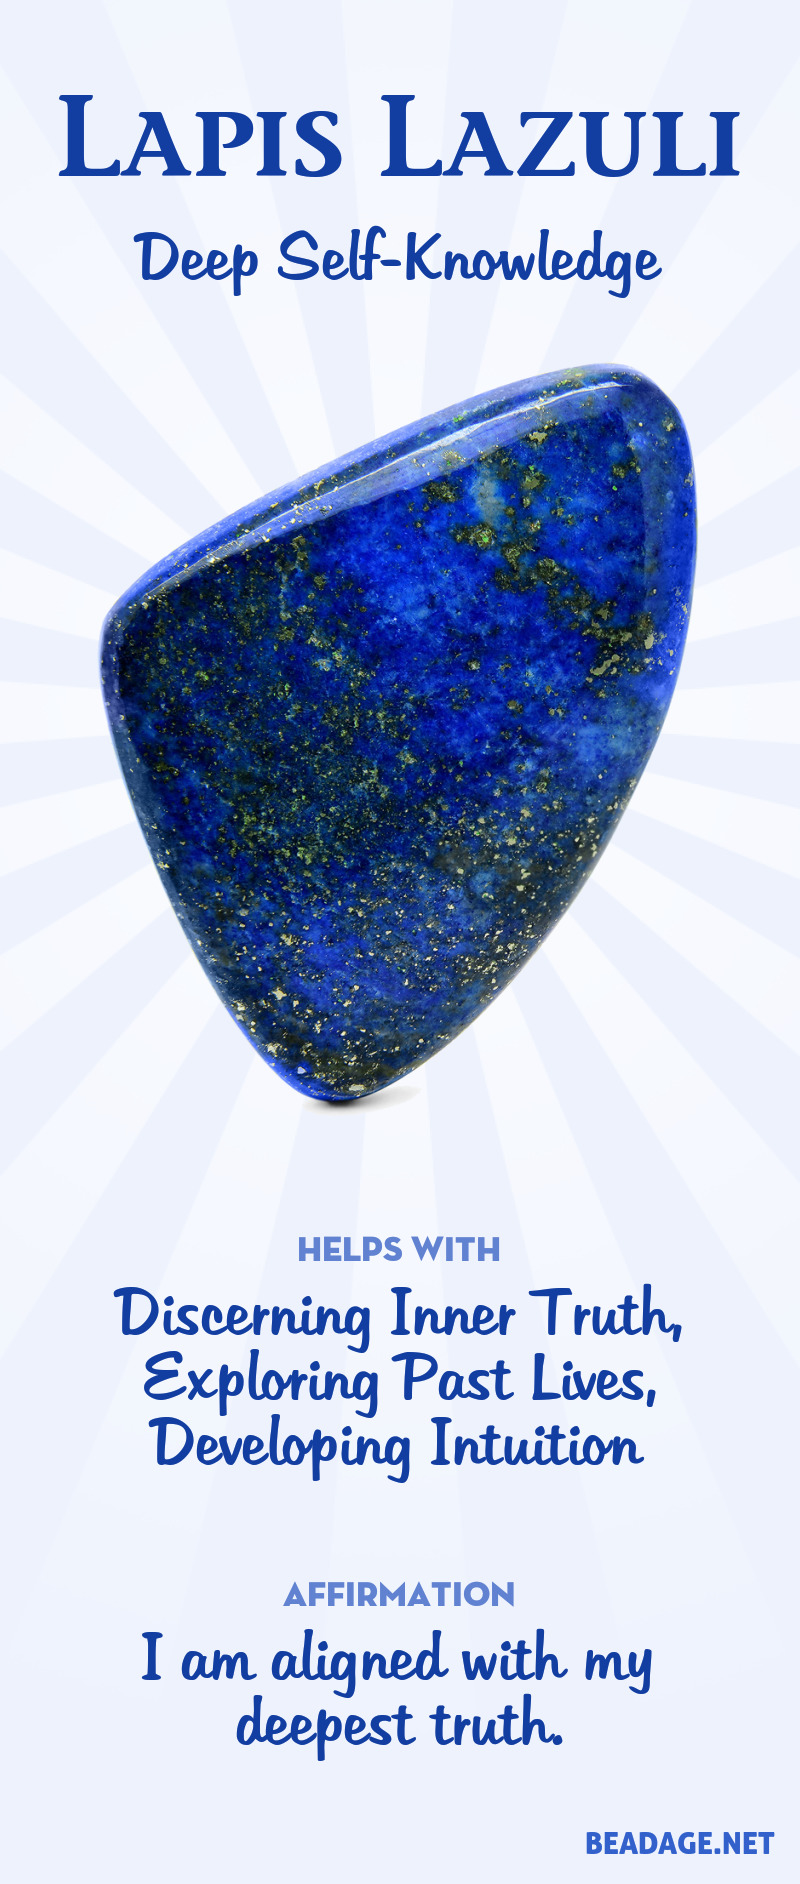 Lapis lazuli is a stone with royal energy, in that it helps you uncover and access your inner noble and Divine nature. It activates psychic abilities and intuition, connecting you to spiritual guidance and visionary awareness. It helps you discern and speak the truth, as well as discover your truest inner Self. Learn more about Lapis Lazuli meaning + healing properties, benefits & more. Visit to find gemstone meanings & info about crystal healing. #gemstones #crystals #crystalhealing #beadage